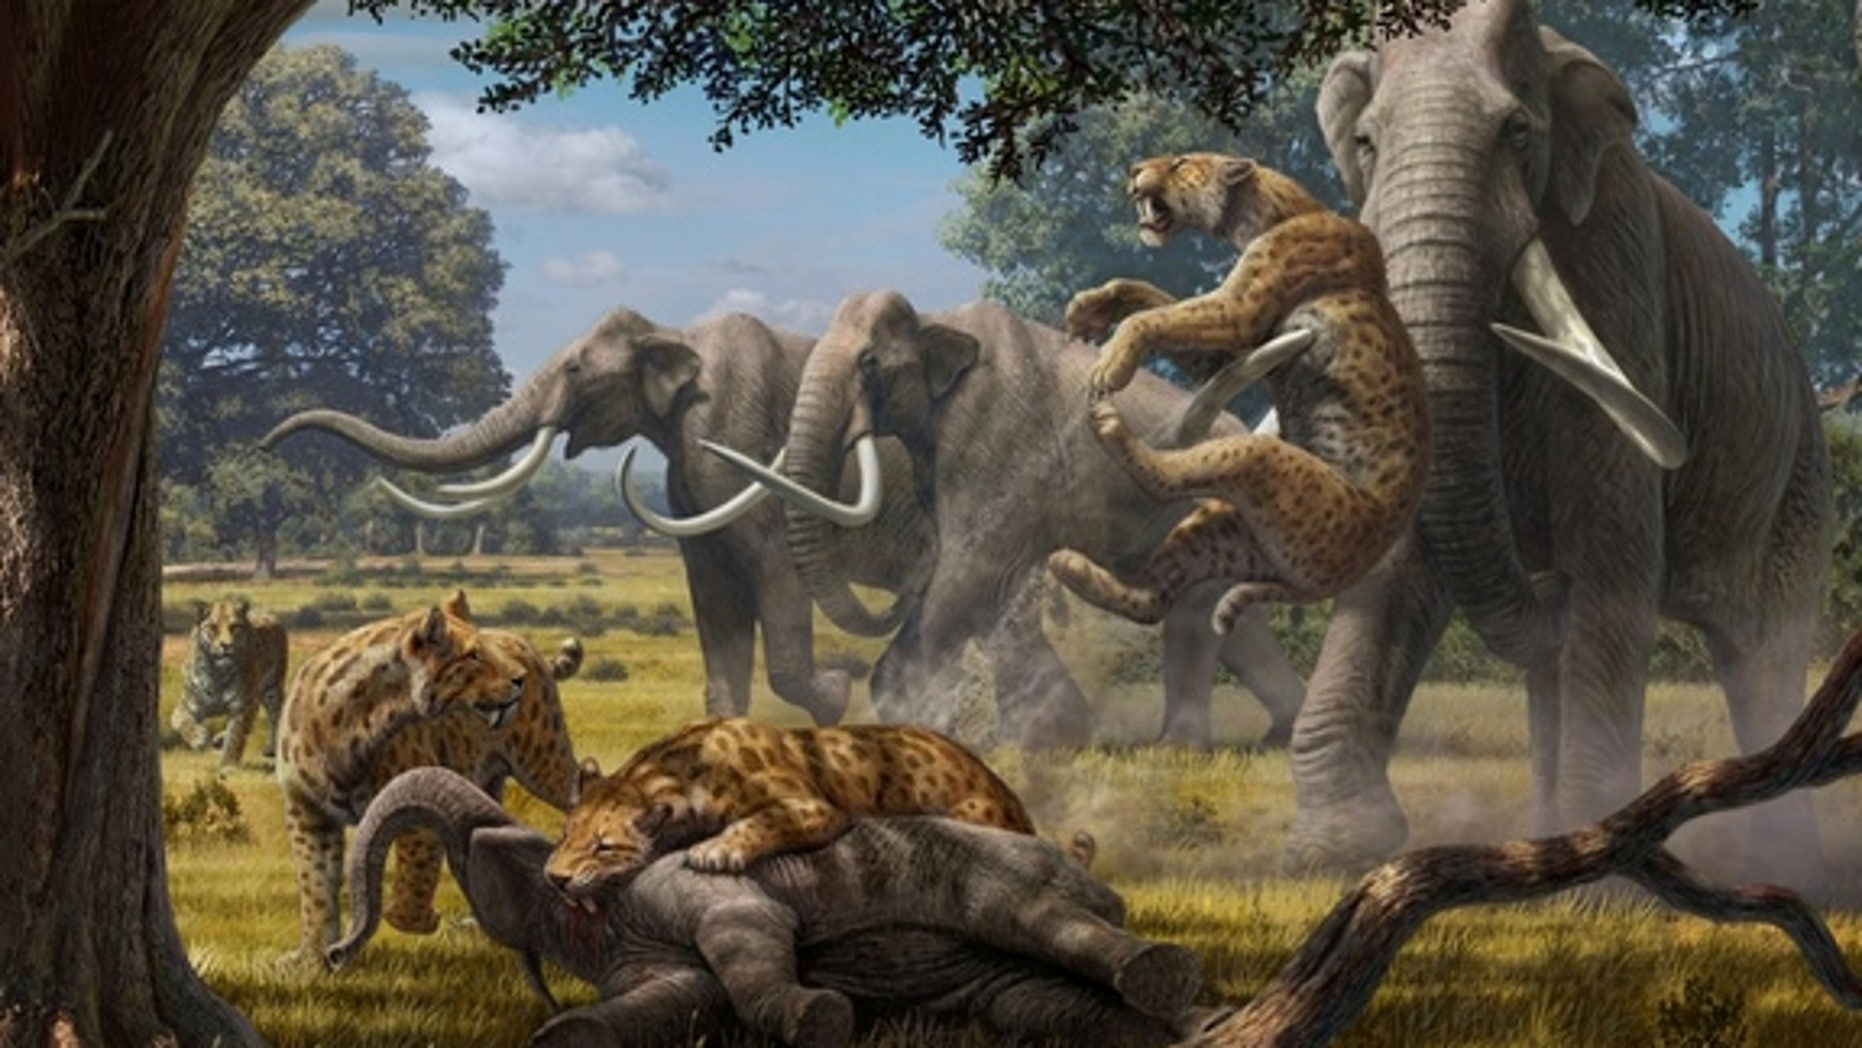 Biologists have found that a pack of hypercarnivores, such as saber-toothed cats (shown here fighting with adult Colombian mammoths over a young mammoth carcass), could have taken down juveniles of Earth's largest herbivores.